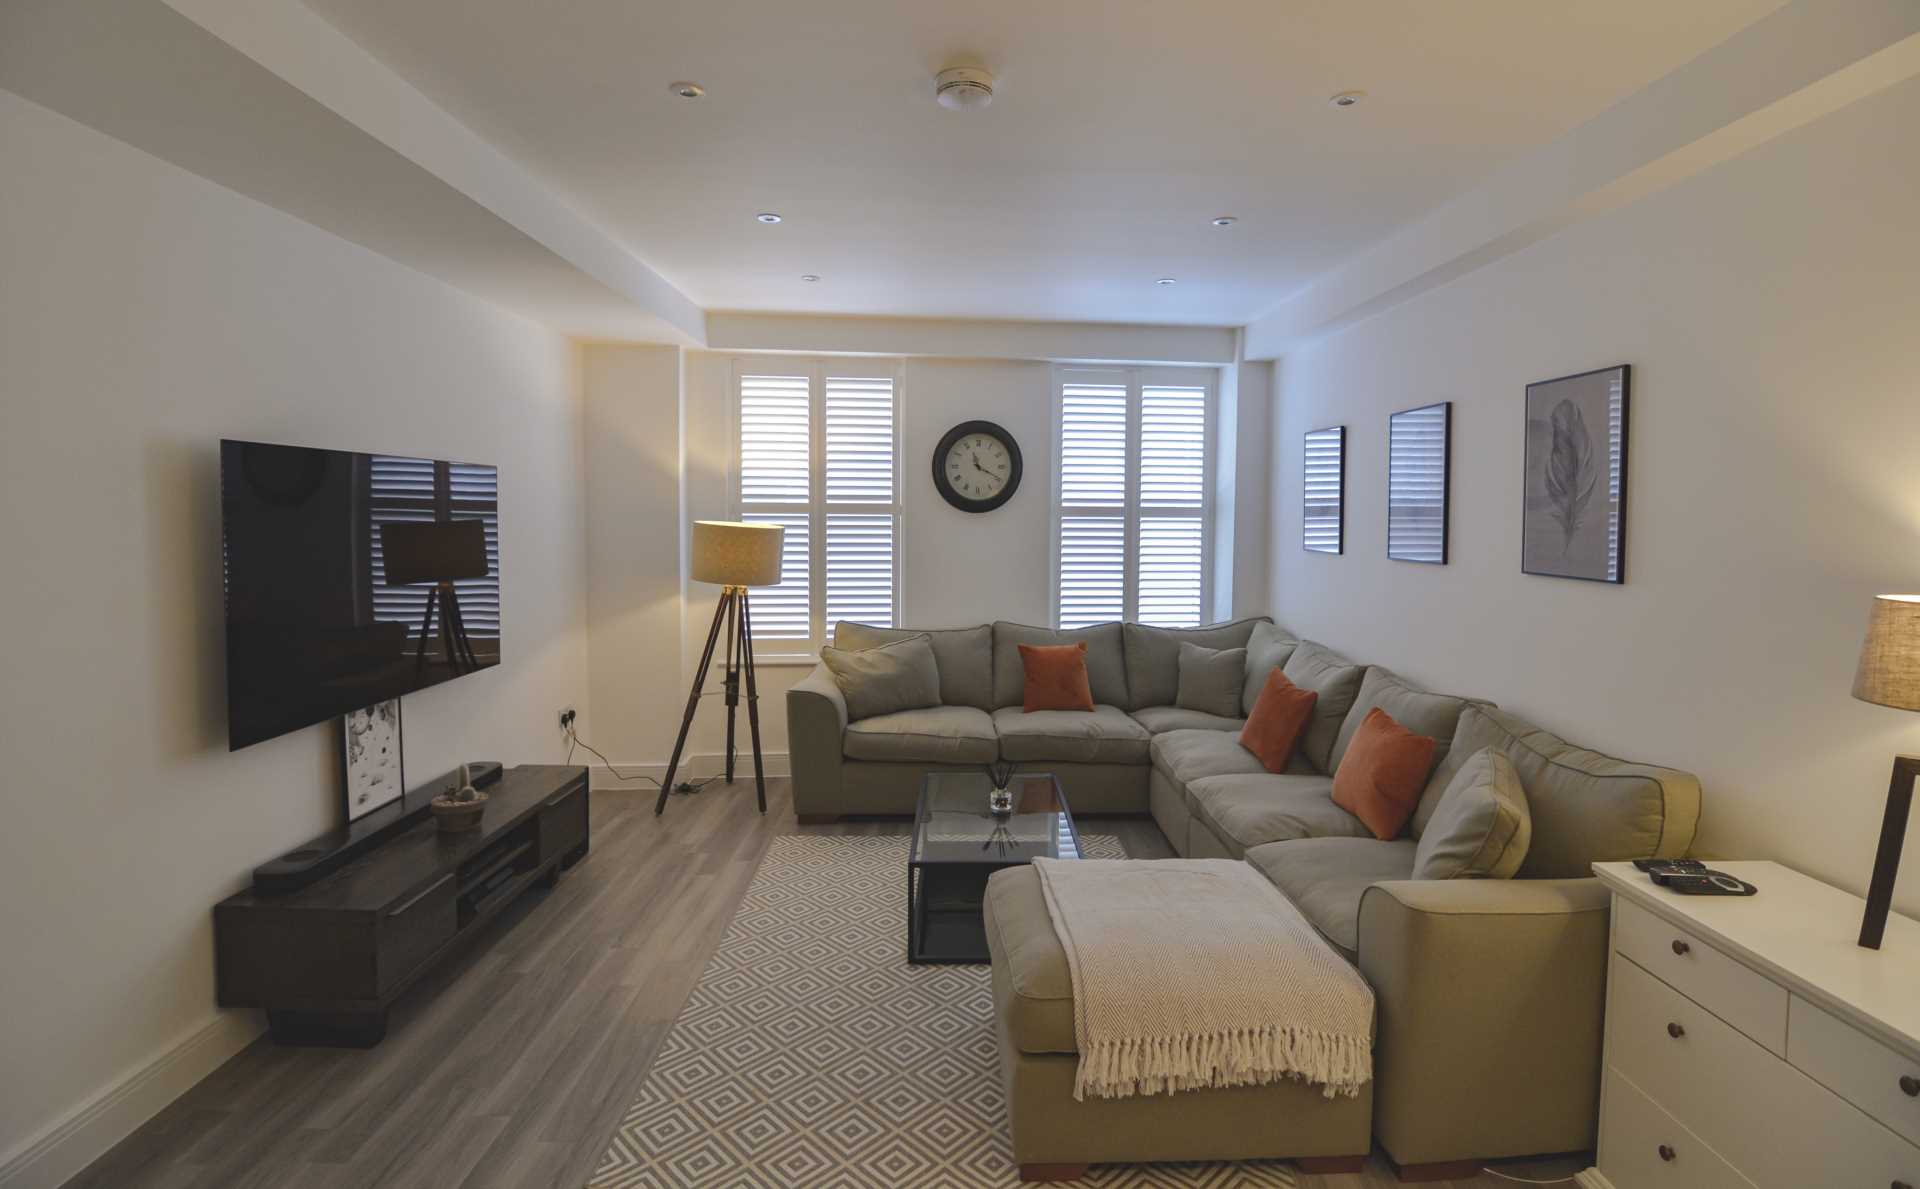 Luxury 2 bedroom apartment, first floor,  Impeccable throughout in the heart of St Helier